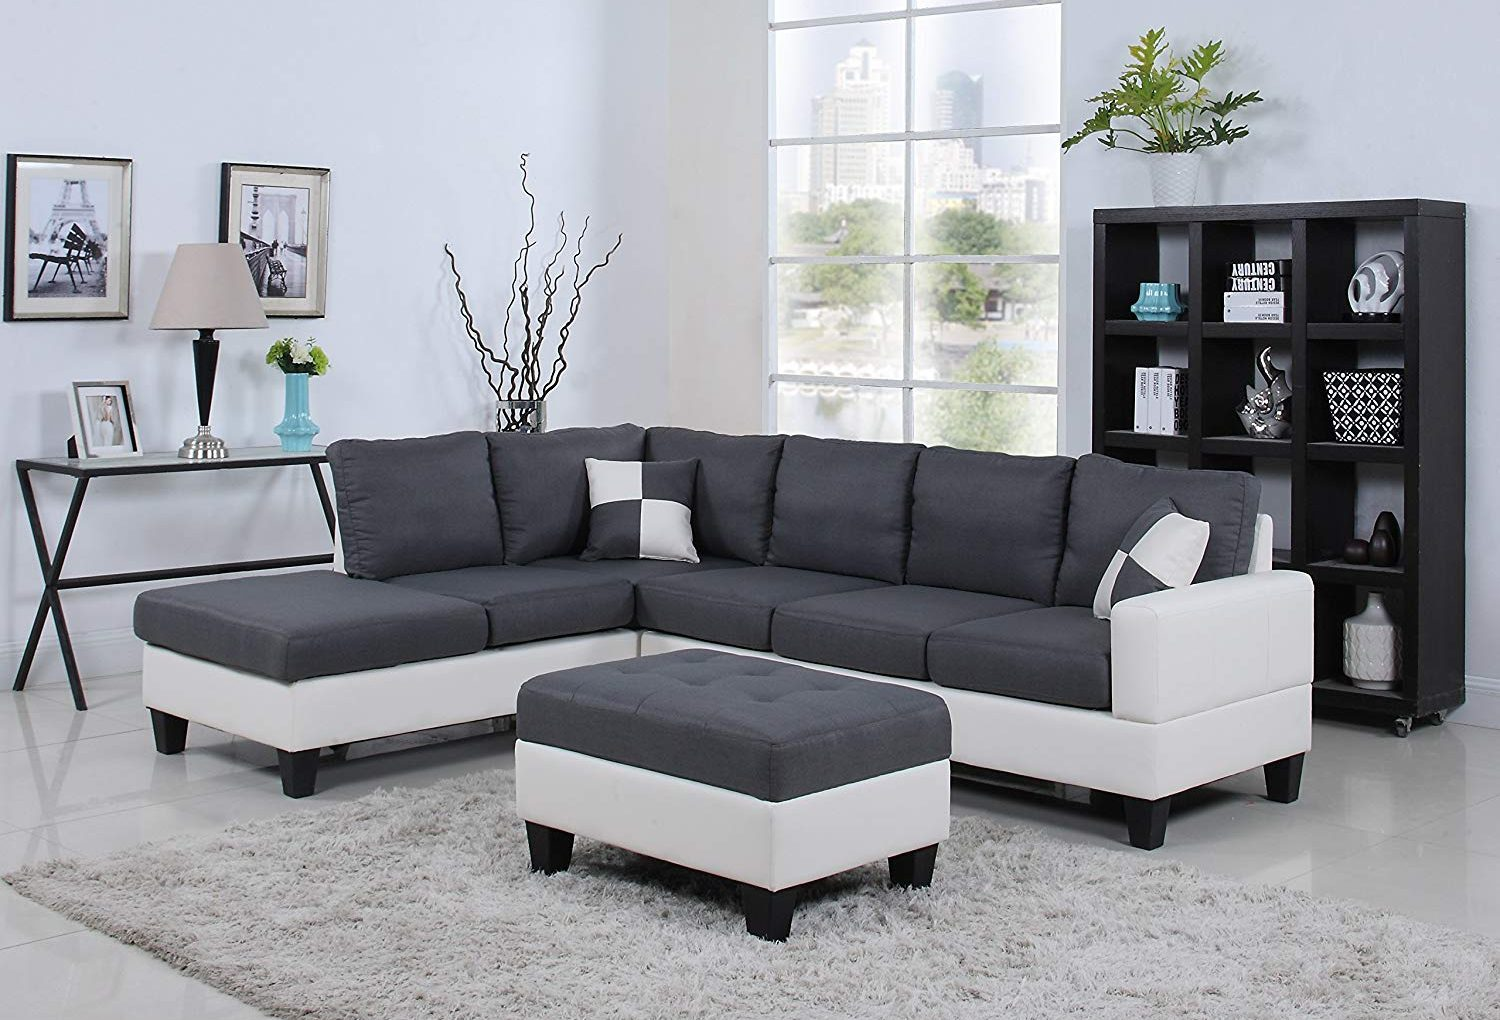 Sectional Sofas For Living Room